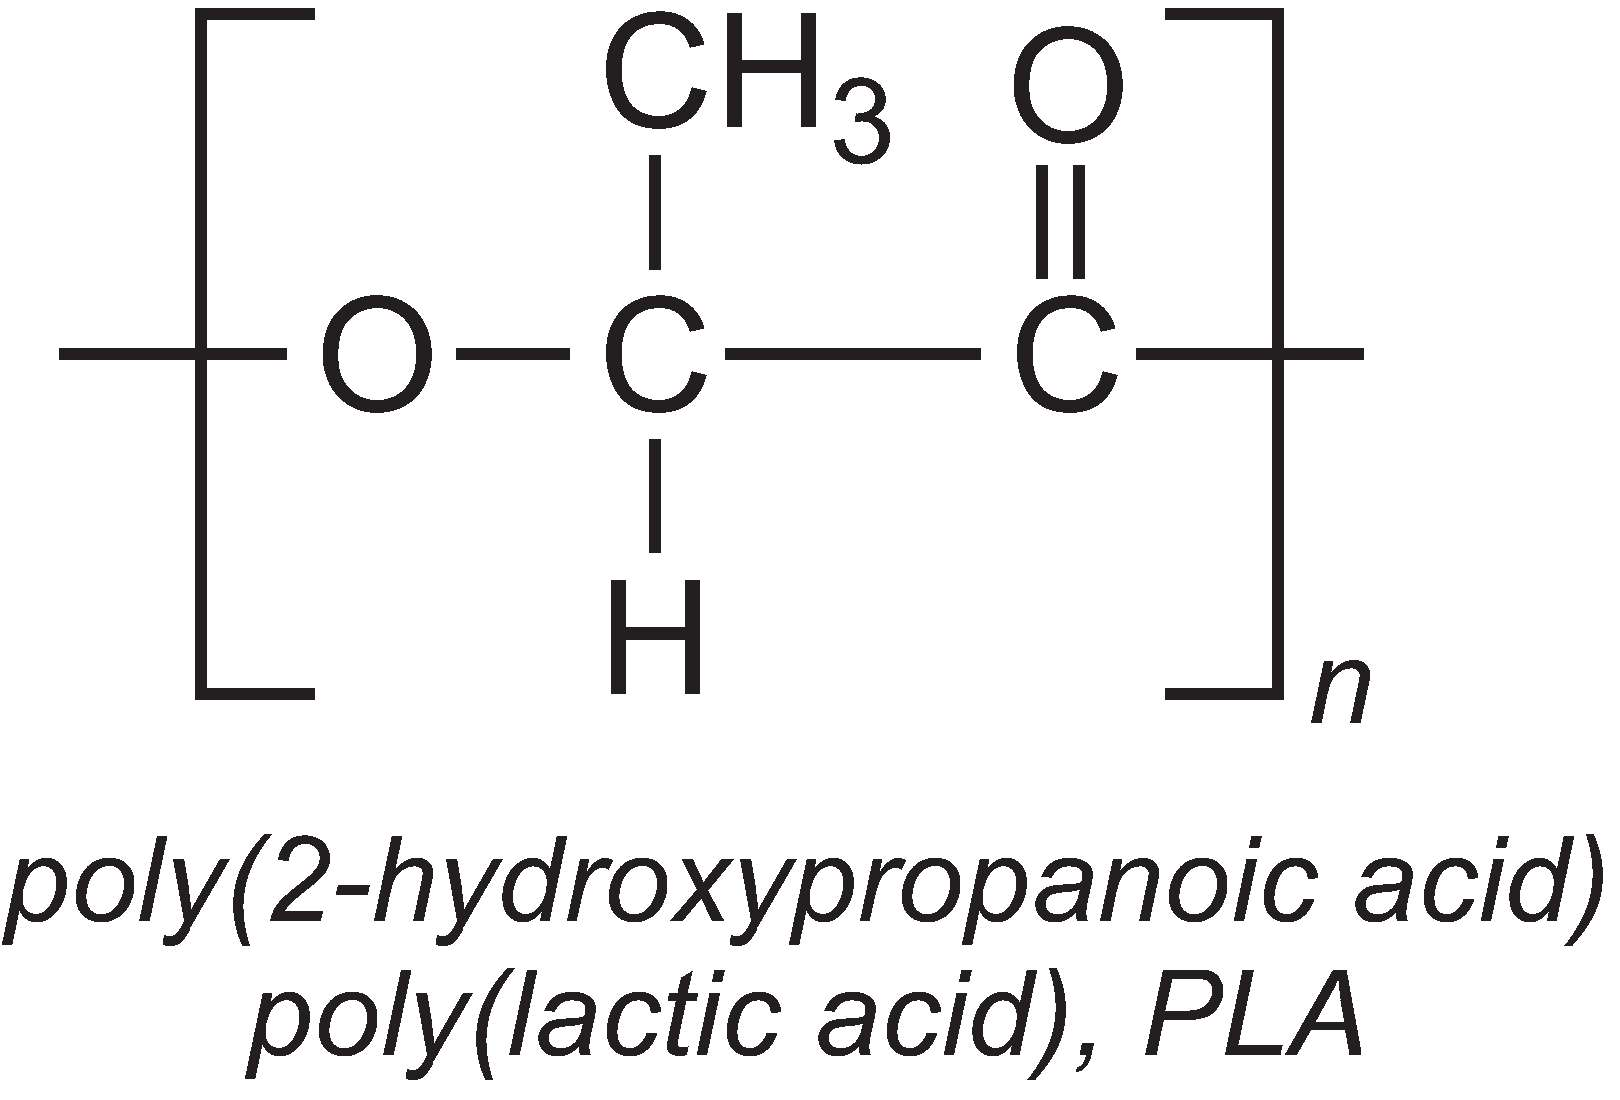 used to synthesise polylactic acid The chemistry behind creating polylactic acid synthesis and characterization of poly (lactic acid) for use in mechanism for synthesis of 4.